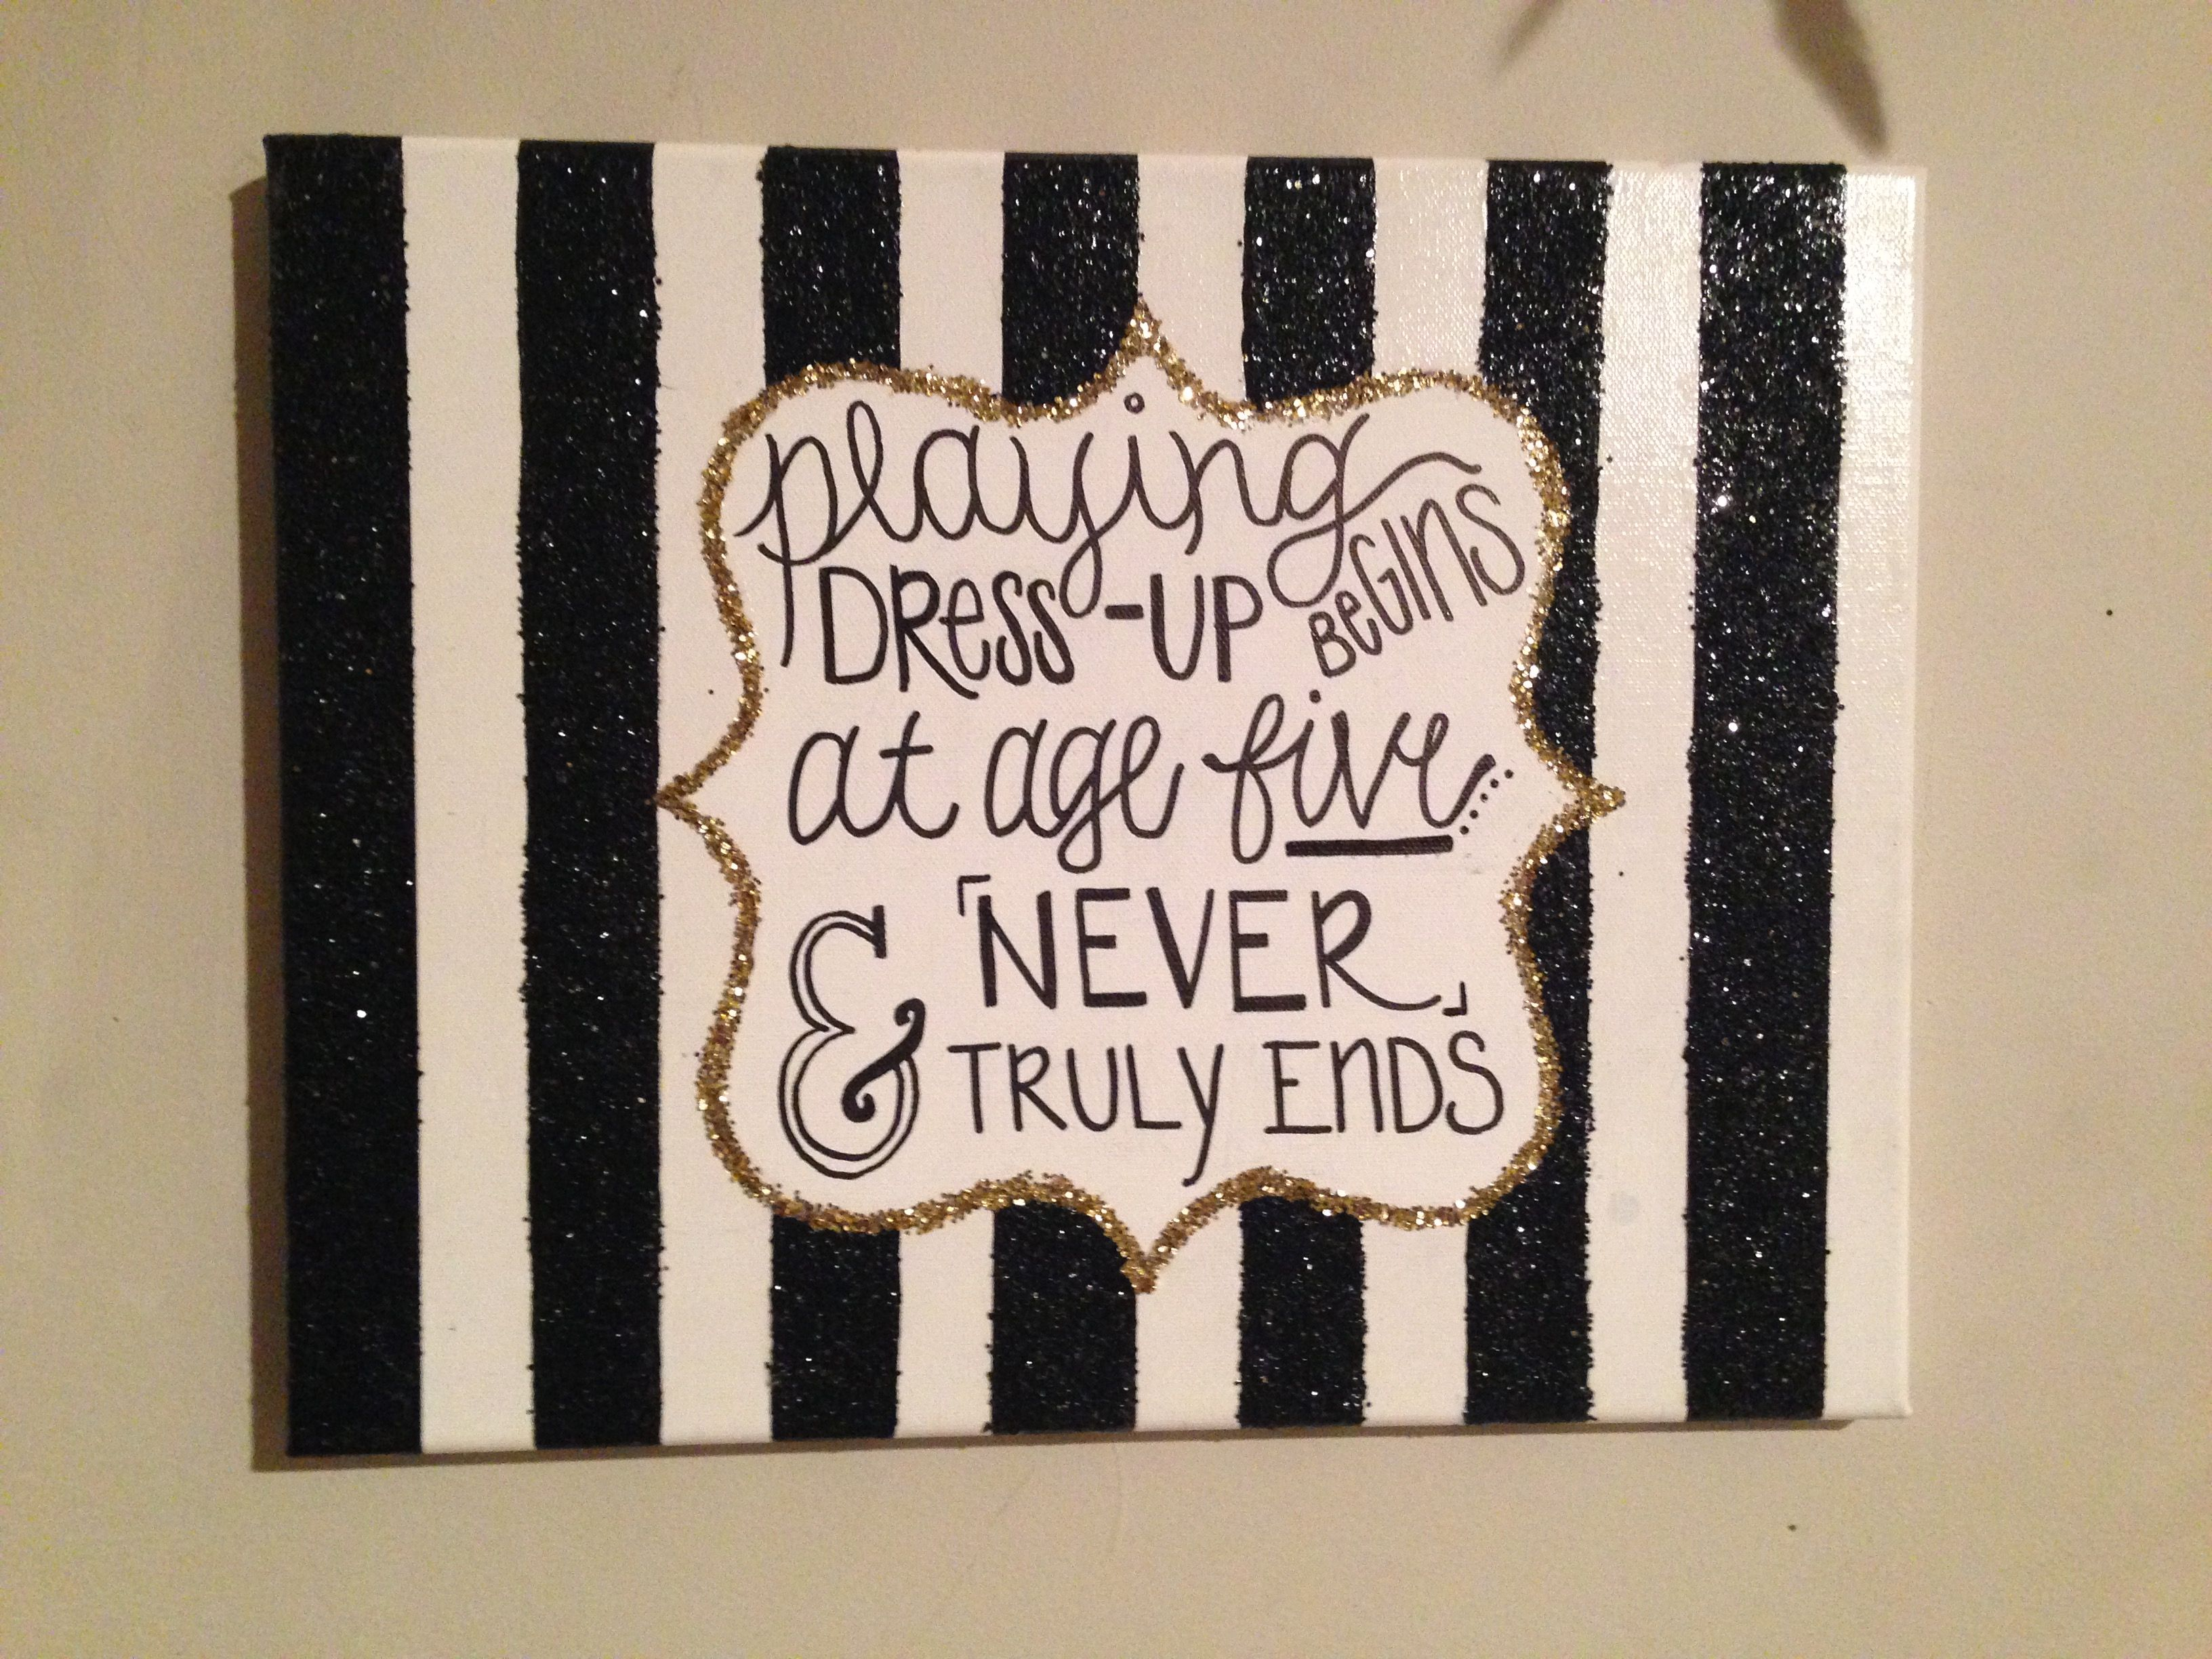 Kate Spade Inspired Designer Canvas Made With Glitter And Quote,